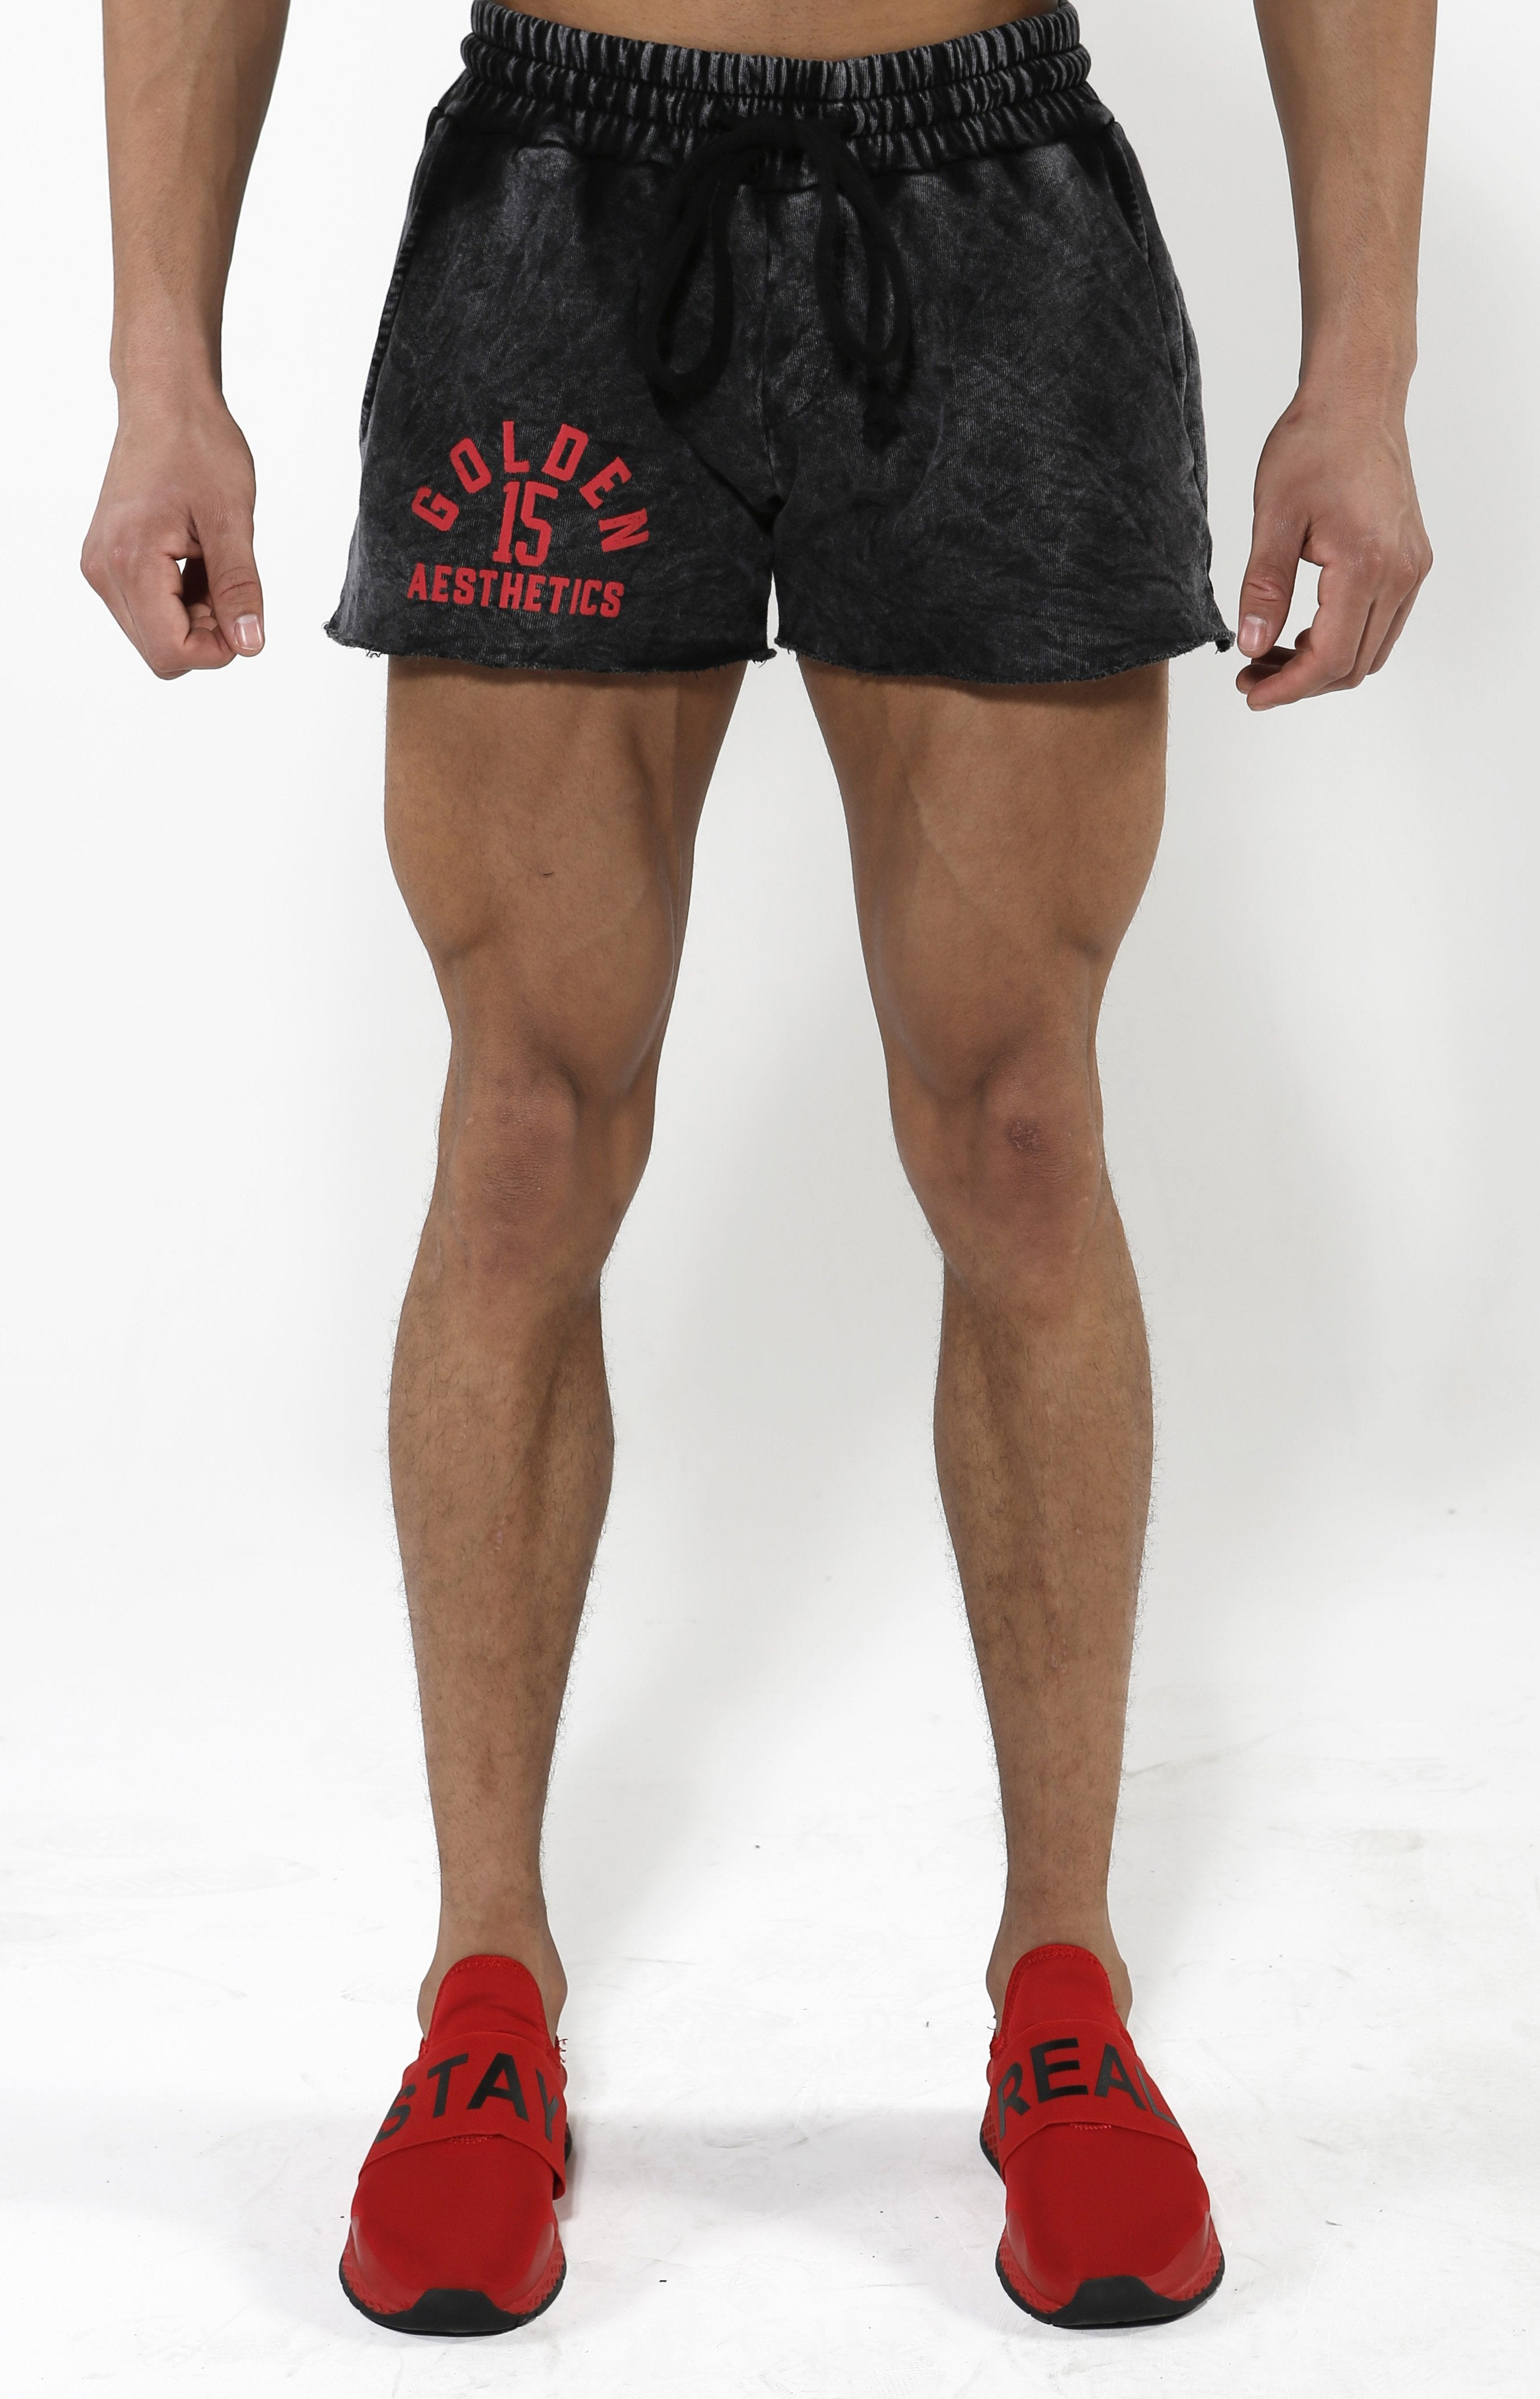 Black Mineral GA15 Shorts Red Puff Print - Golden Aesthetics